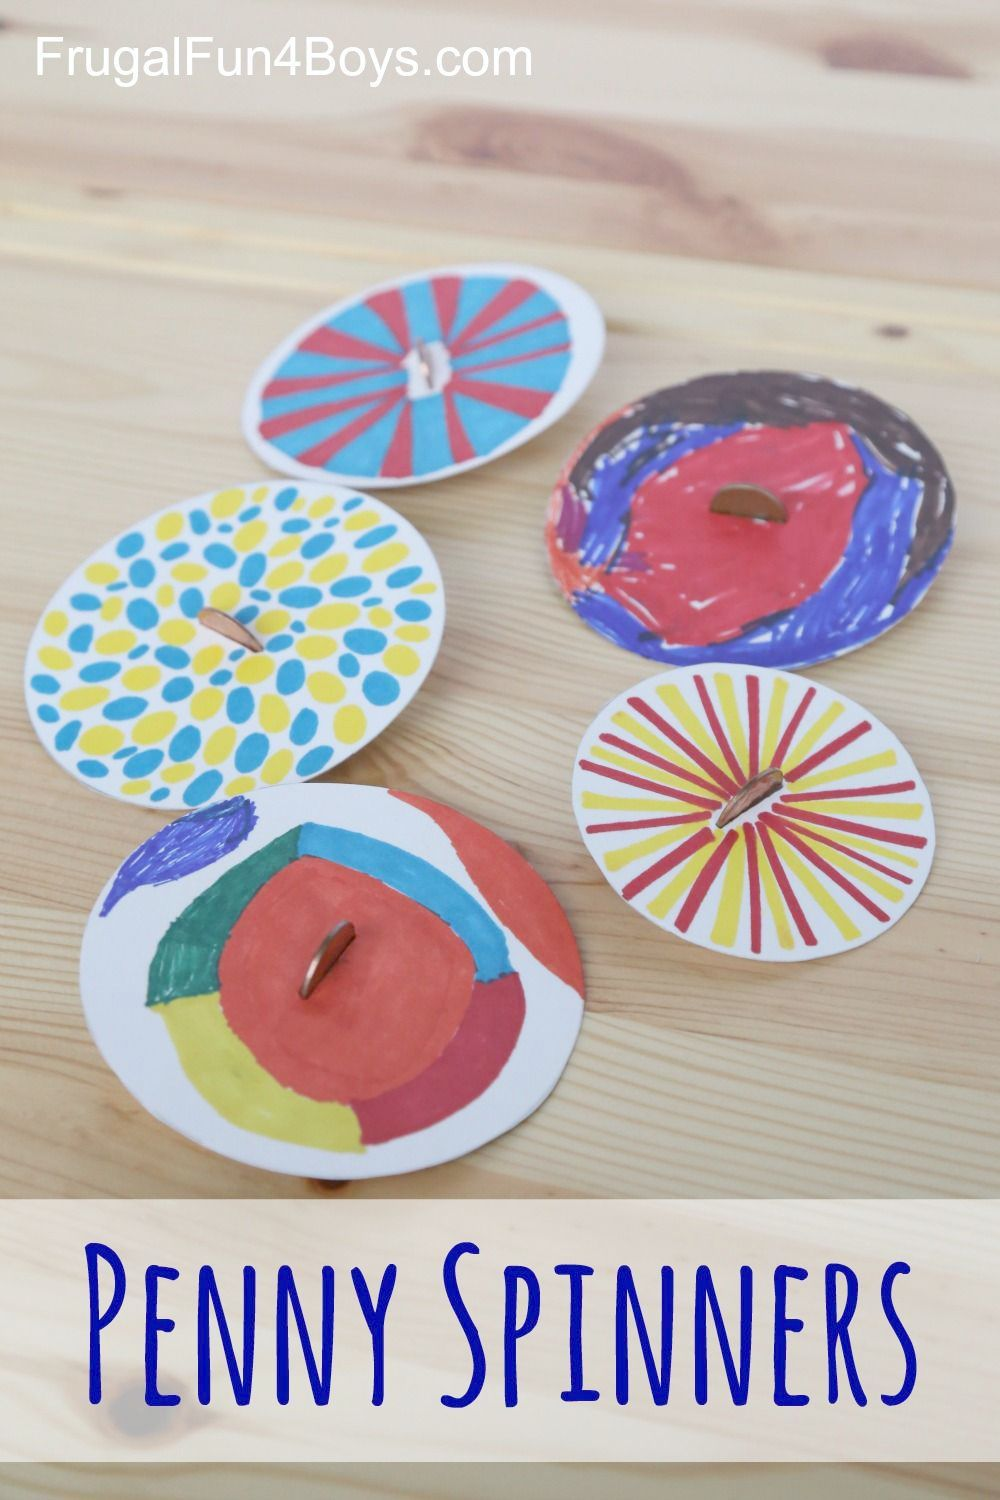 General Crafting Meaning Our Crafting Company Meaning The Cookieswirlc Crafting Videos Without Crafting And Building In Crafts For Boys Preschool Crafts Crafts